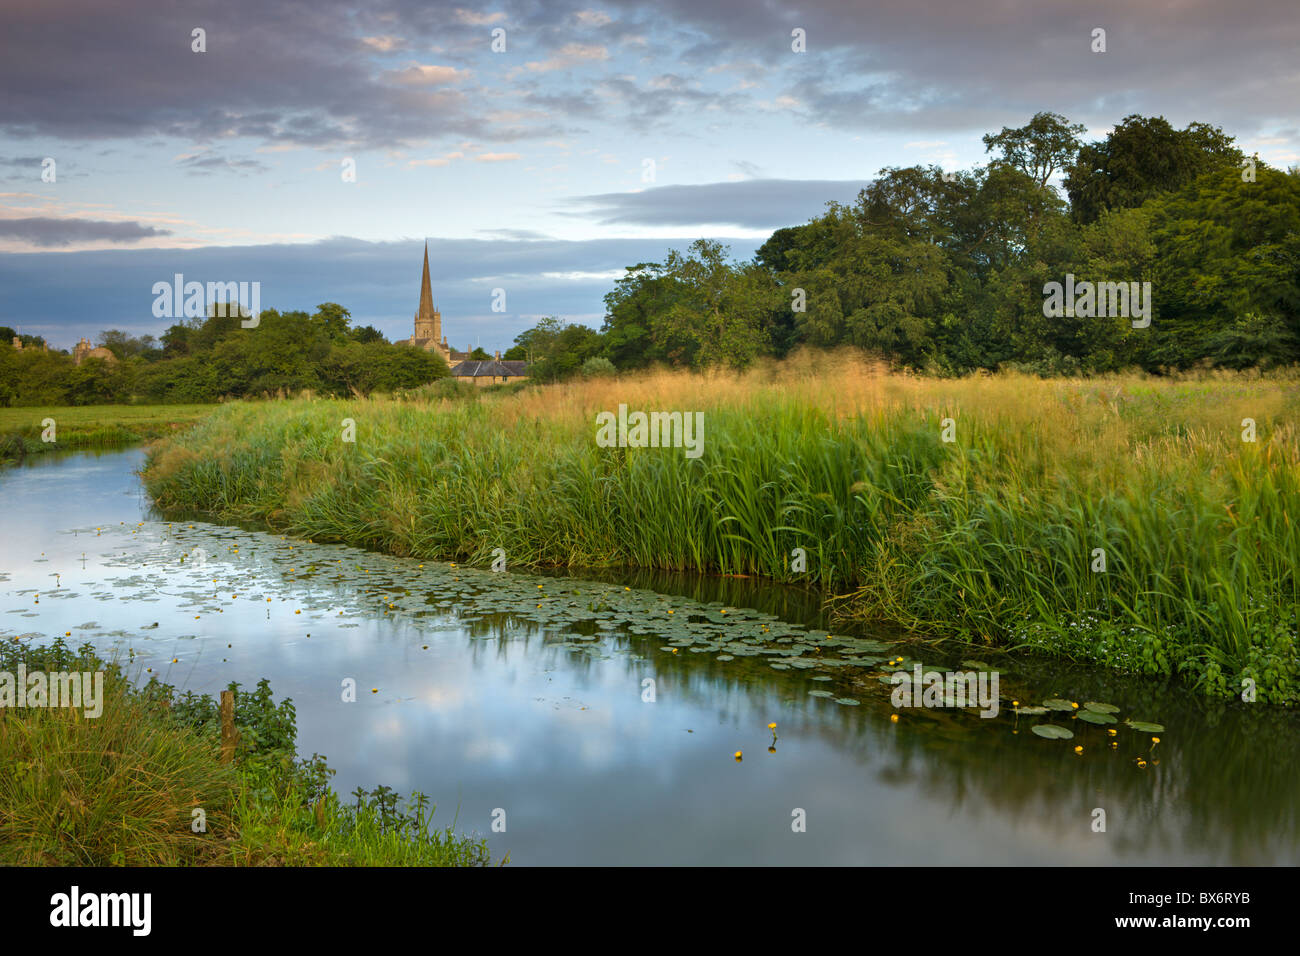 Burford Church spire reflected in the River Windrush watermeadows, Burford, The Cotswolds, Oxfordshire, England. - Stock Image